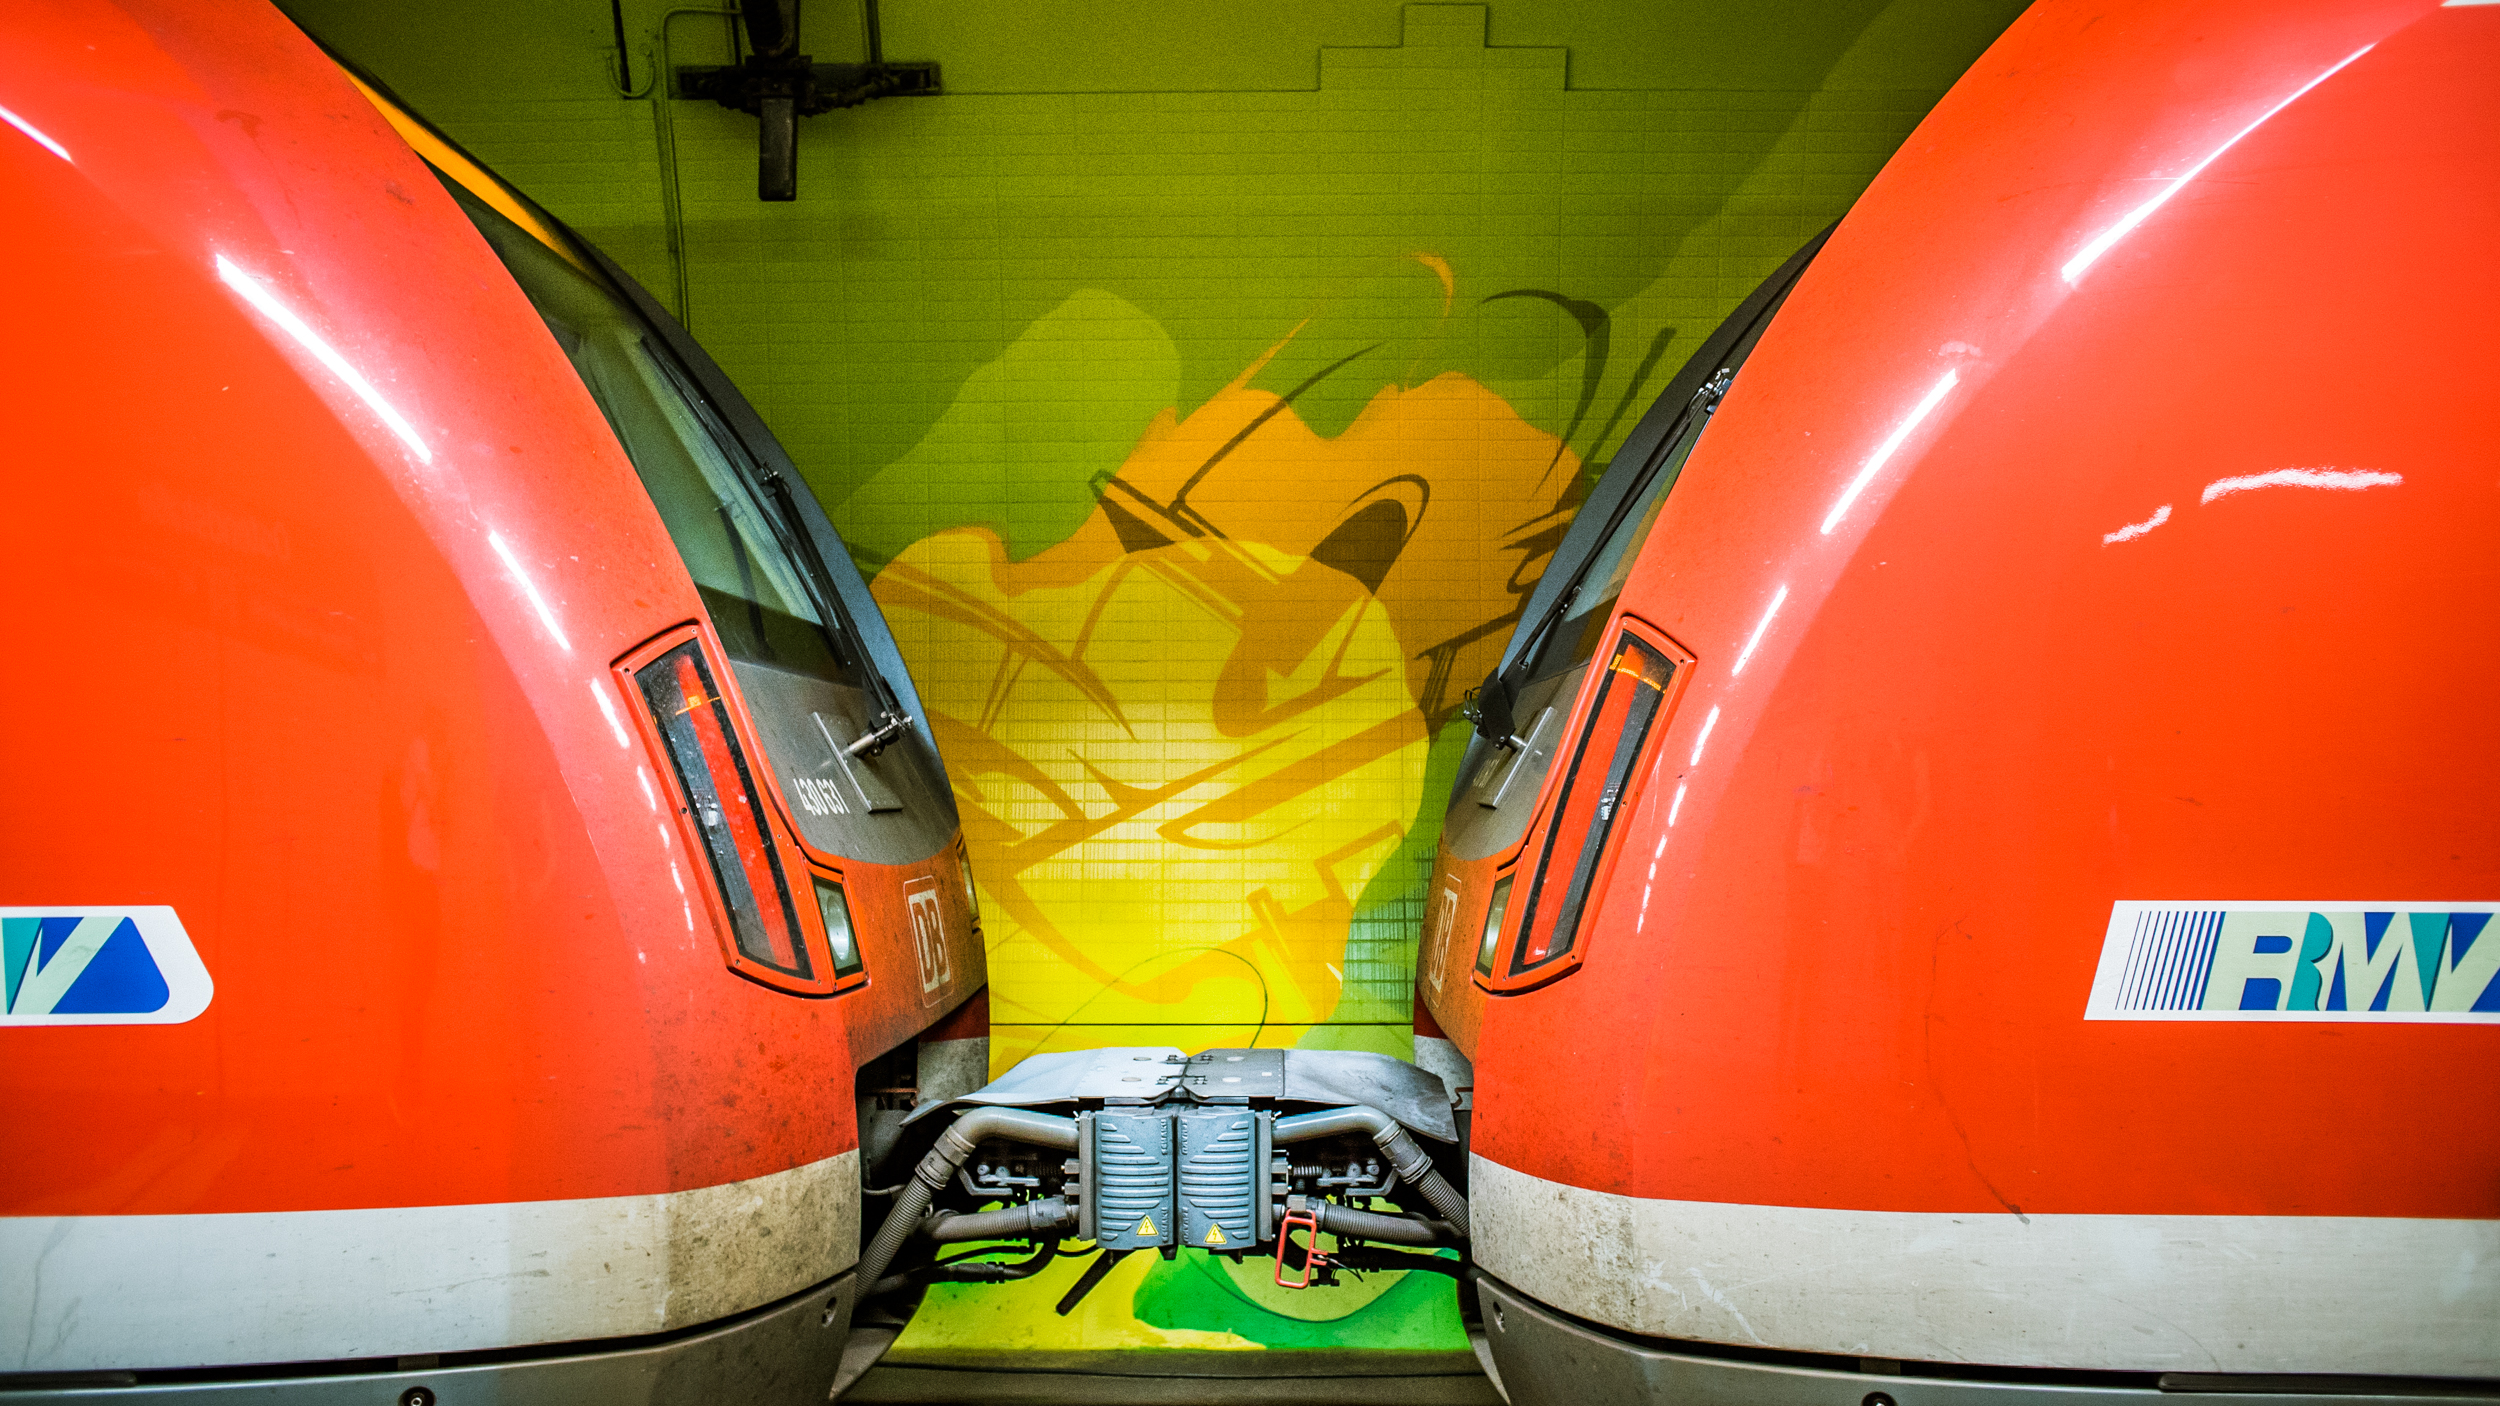 A work by Does - Ostendstrasse frankfurt germany tunnel 26